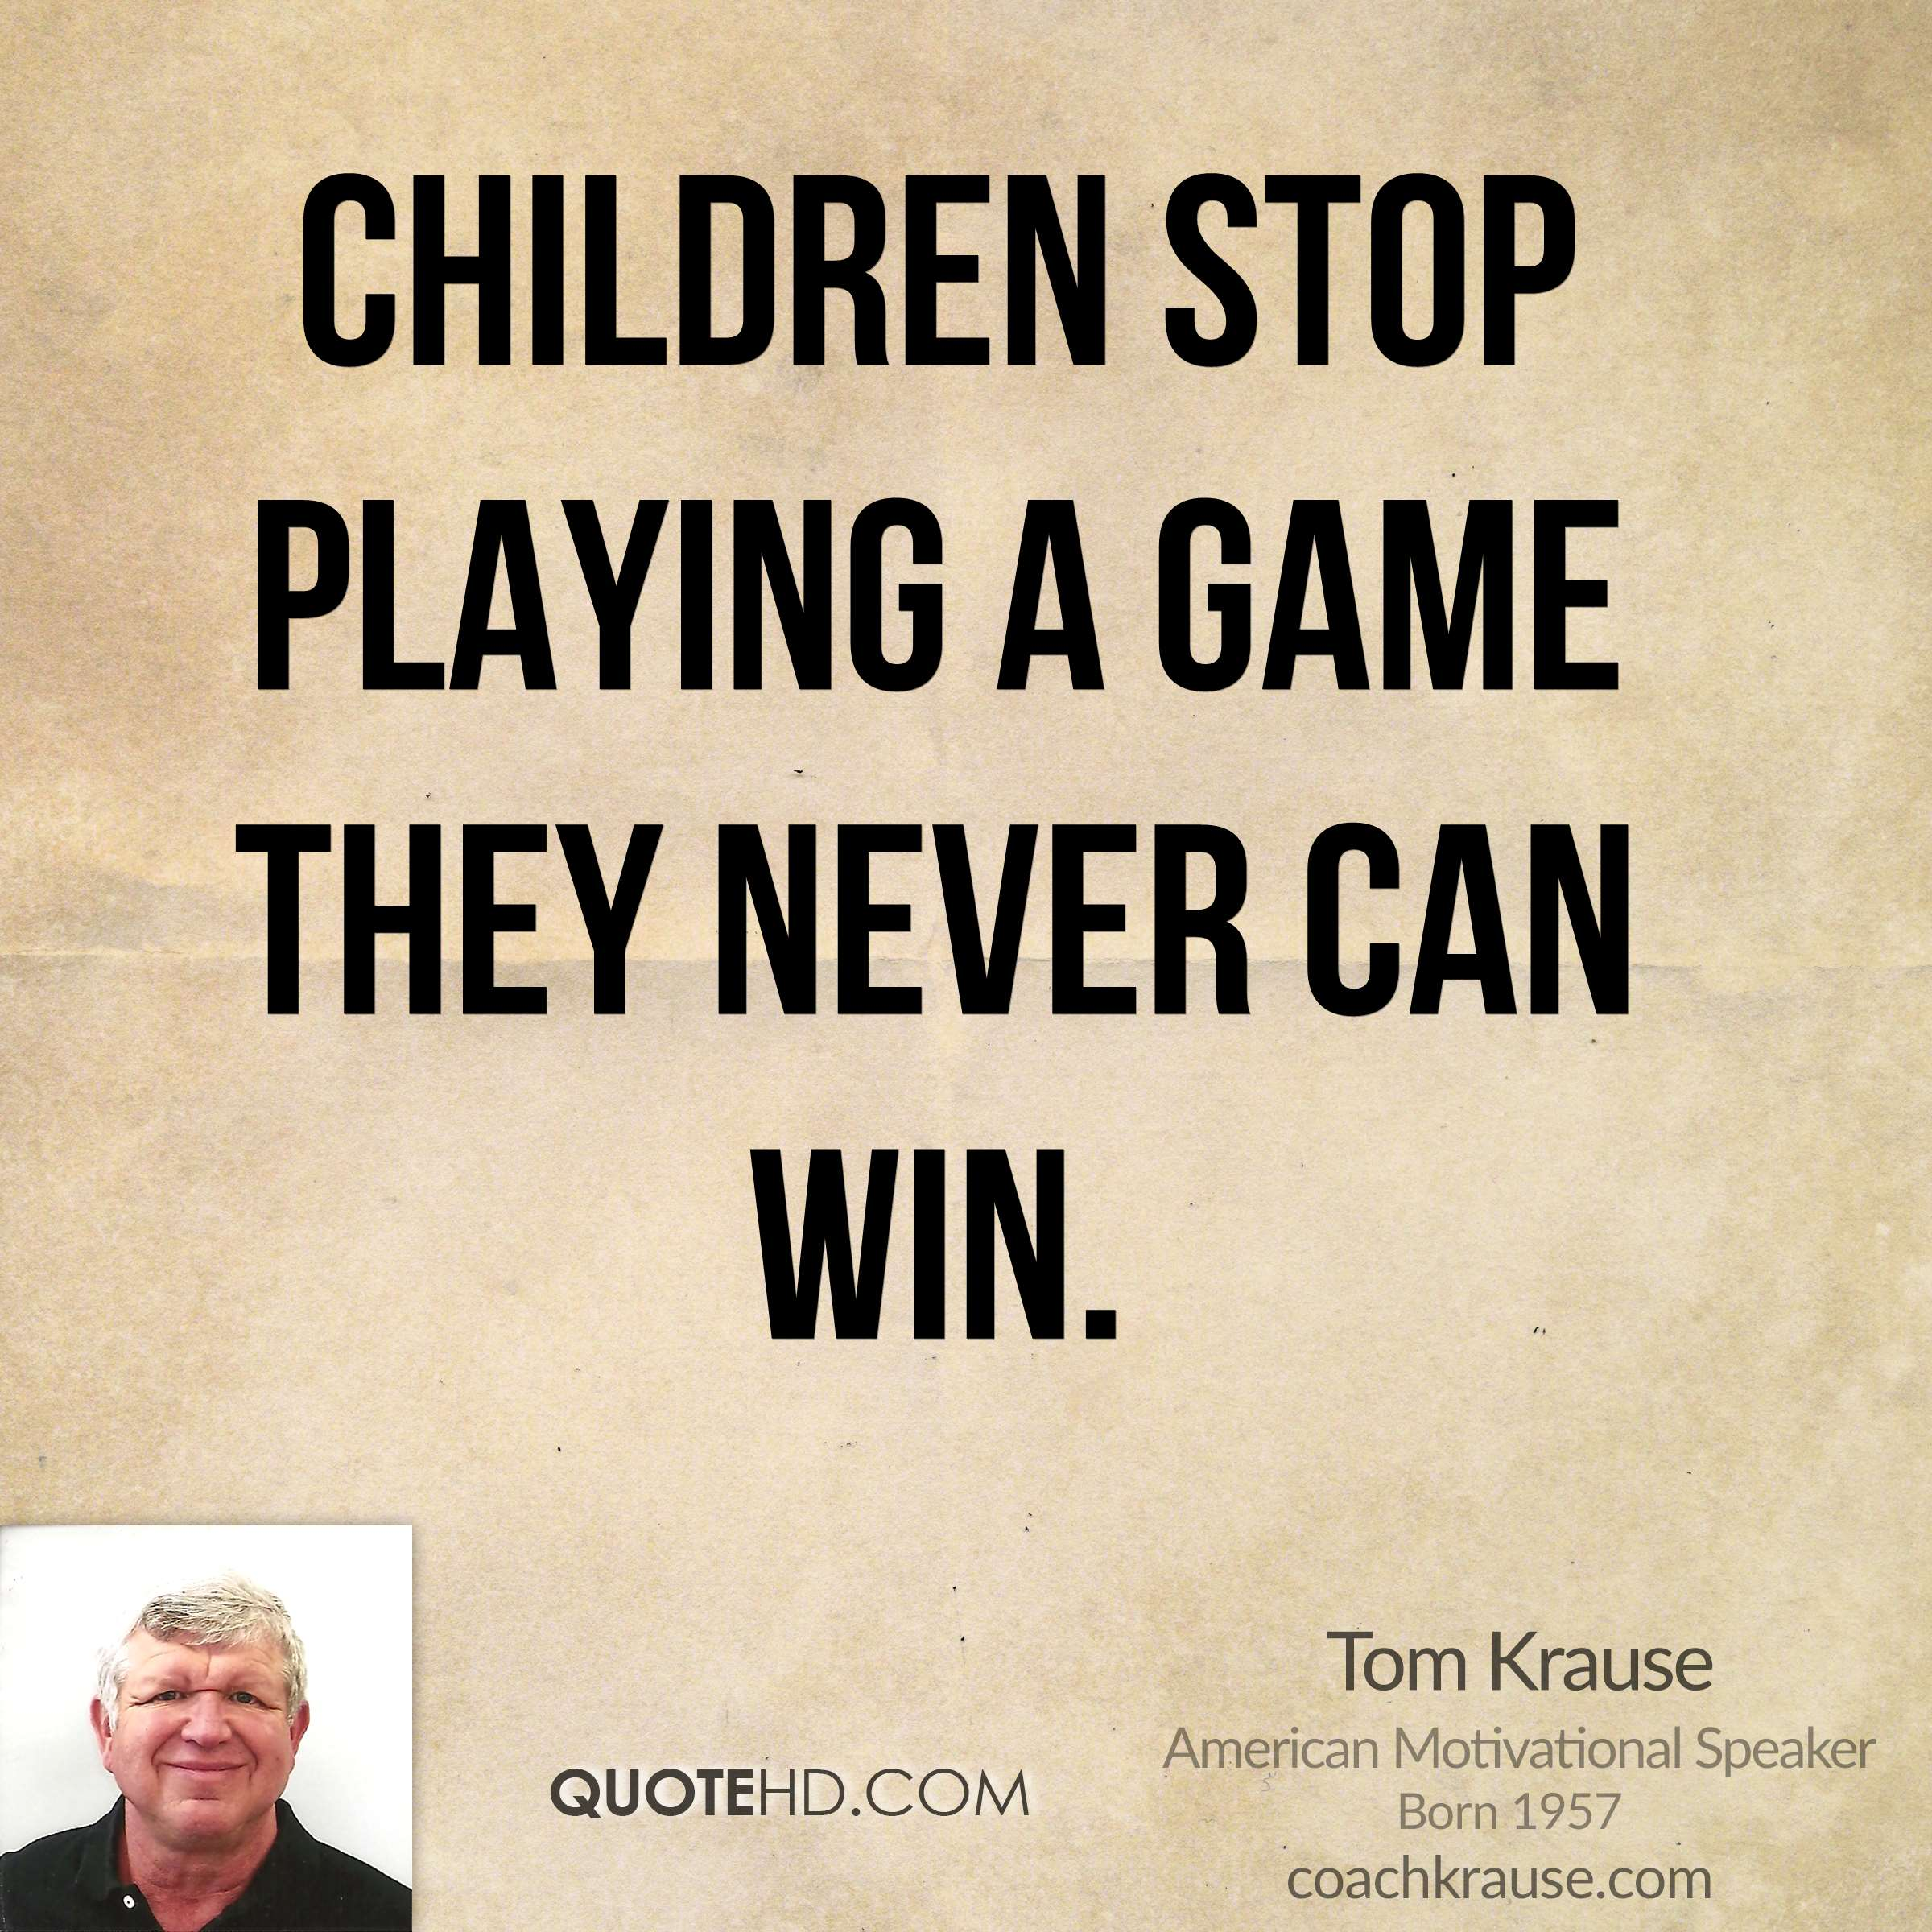 Children stop playing a game they never can win.